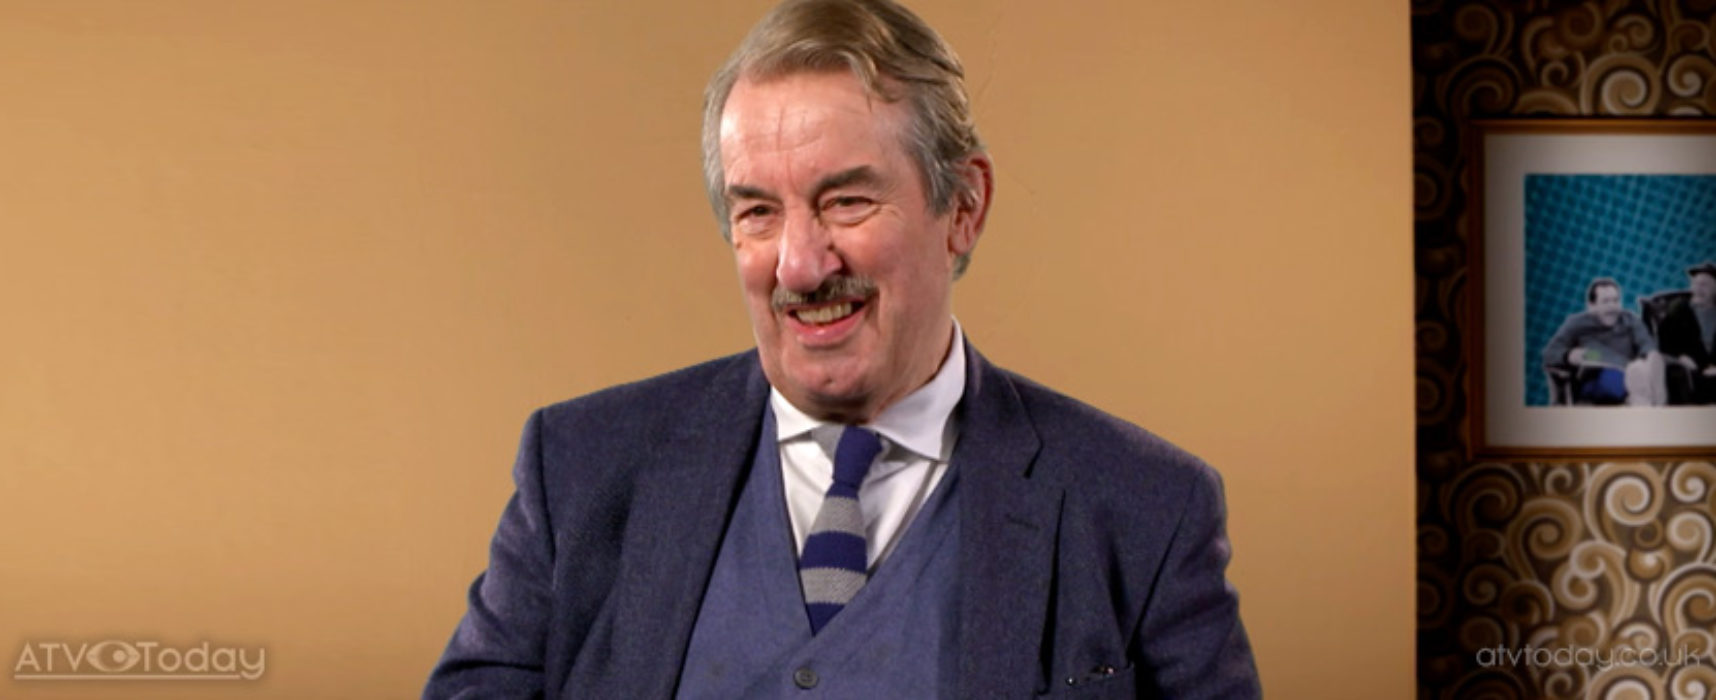 Boycie from Only Fools and Horses backs the UKTV commemorative statue campaign